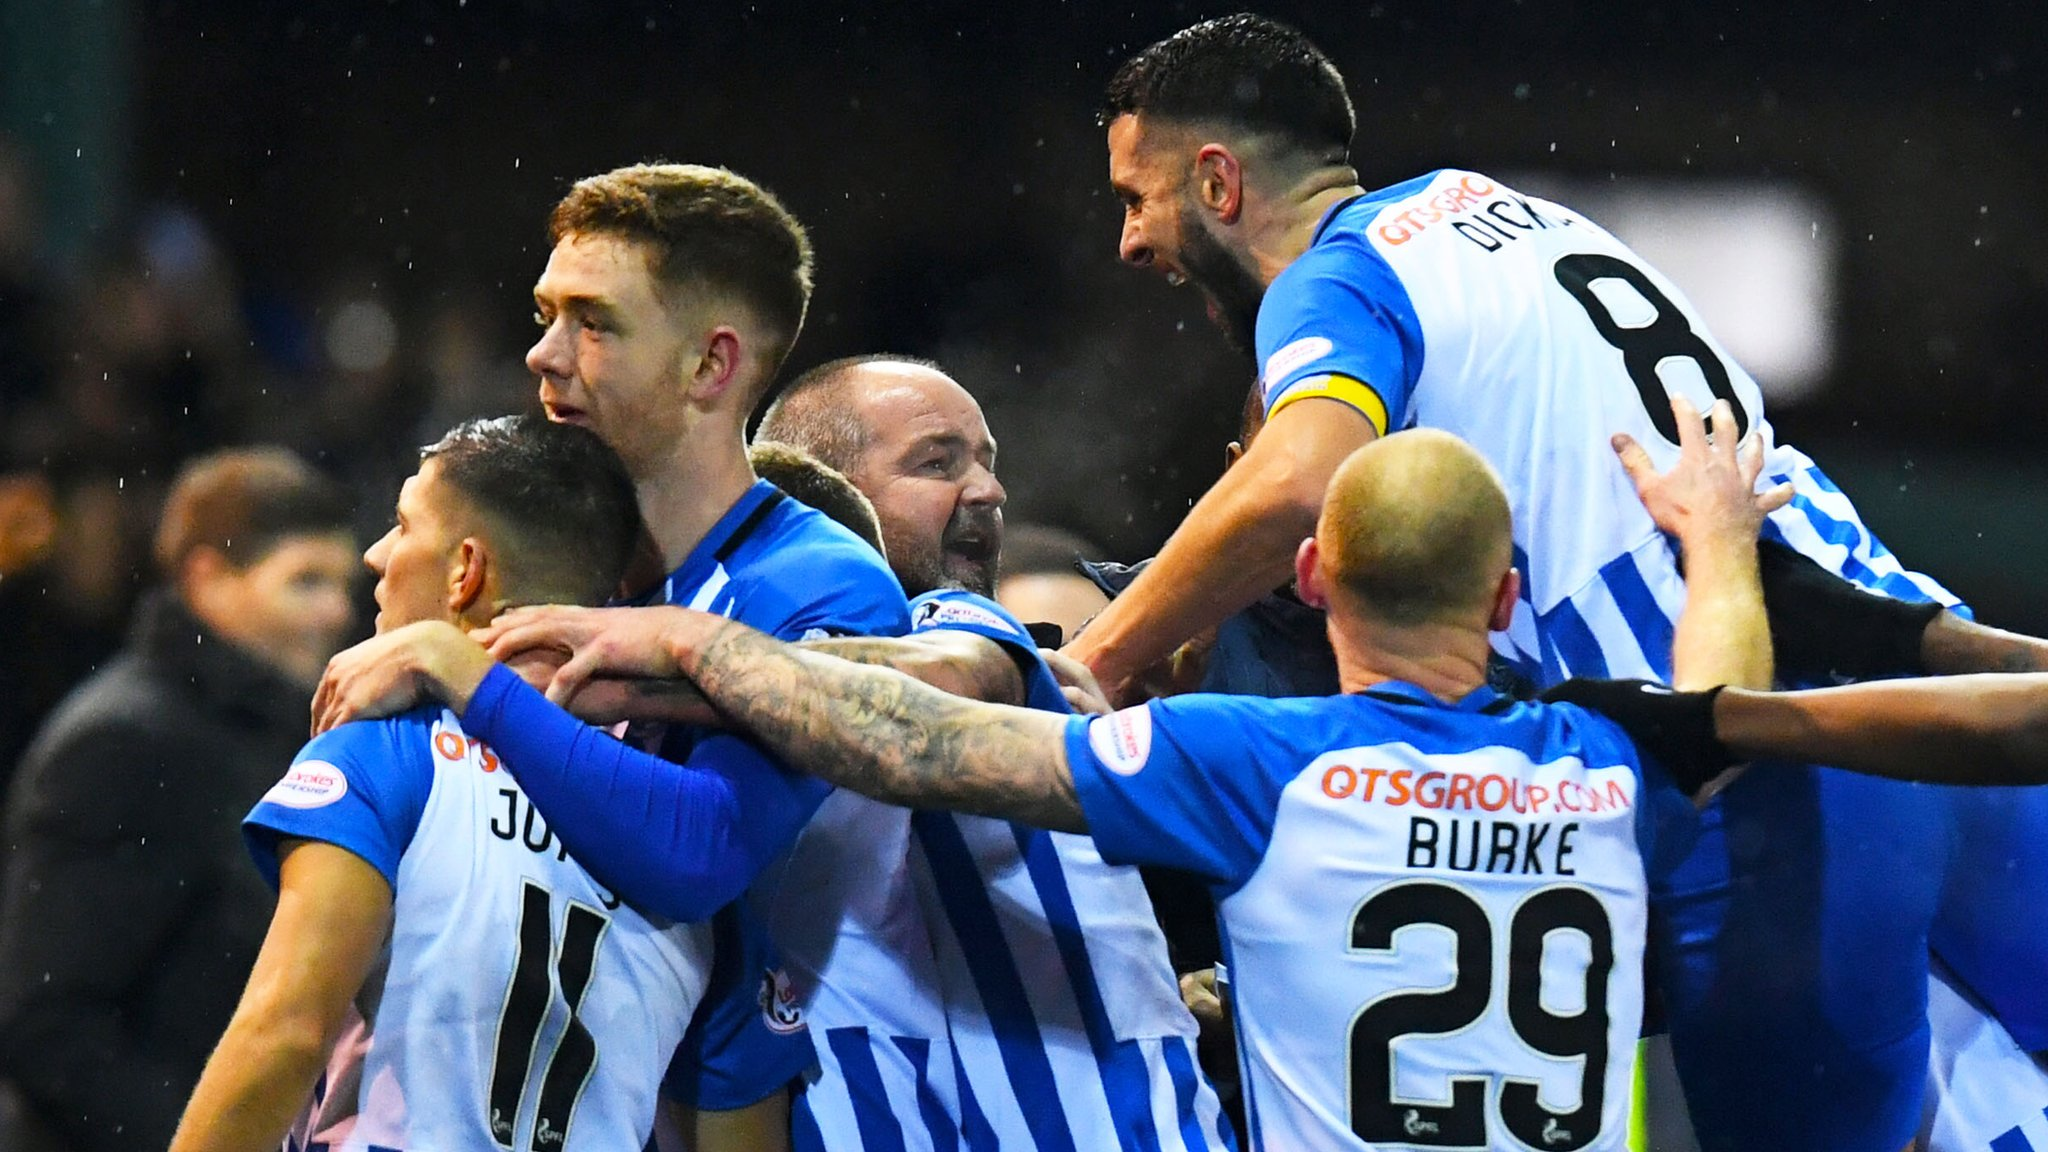 Rangers beaten by goal from Kilmarnock's Jones - who will join them in summer